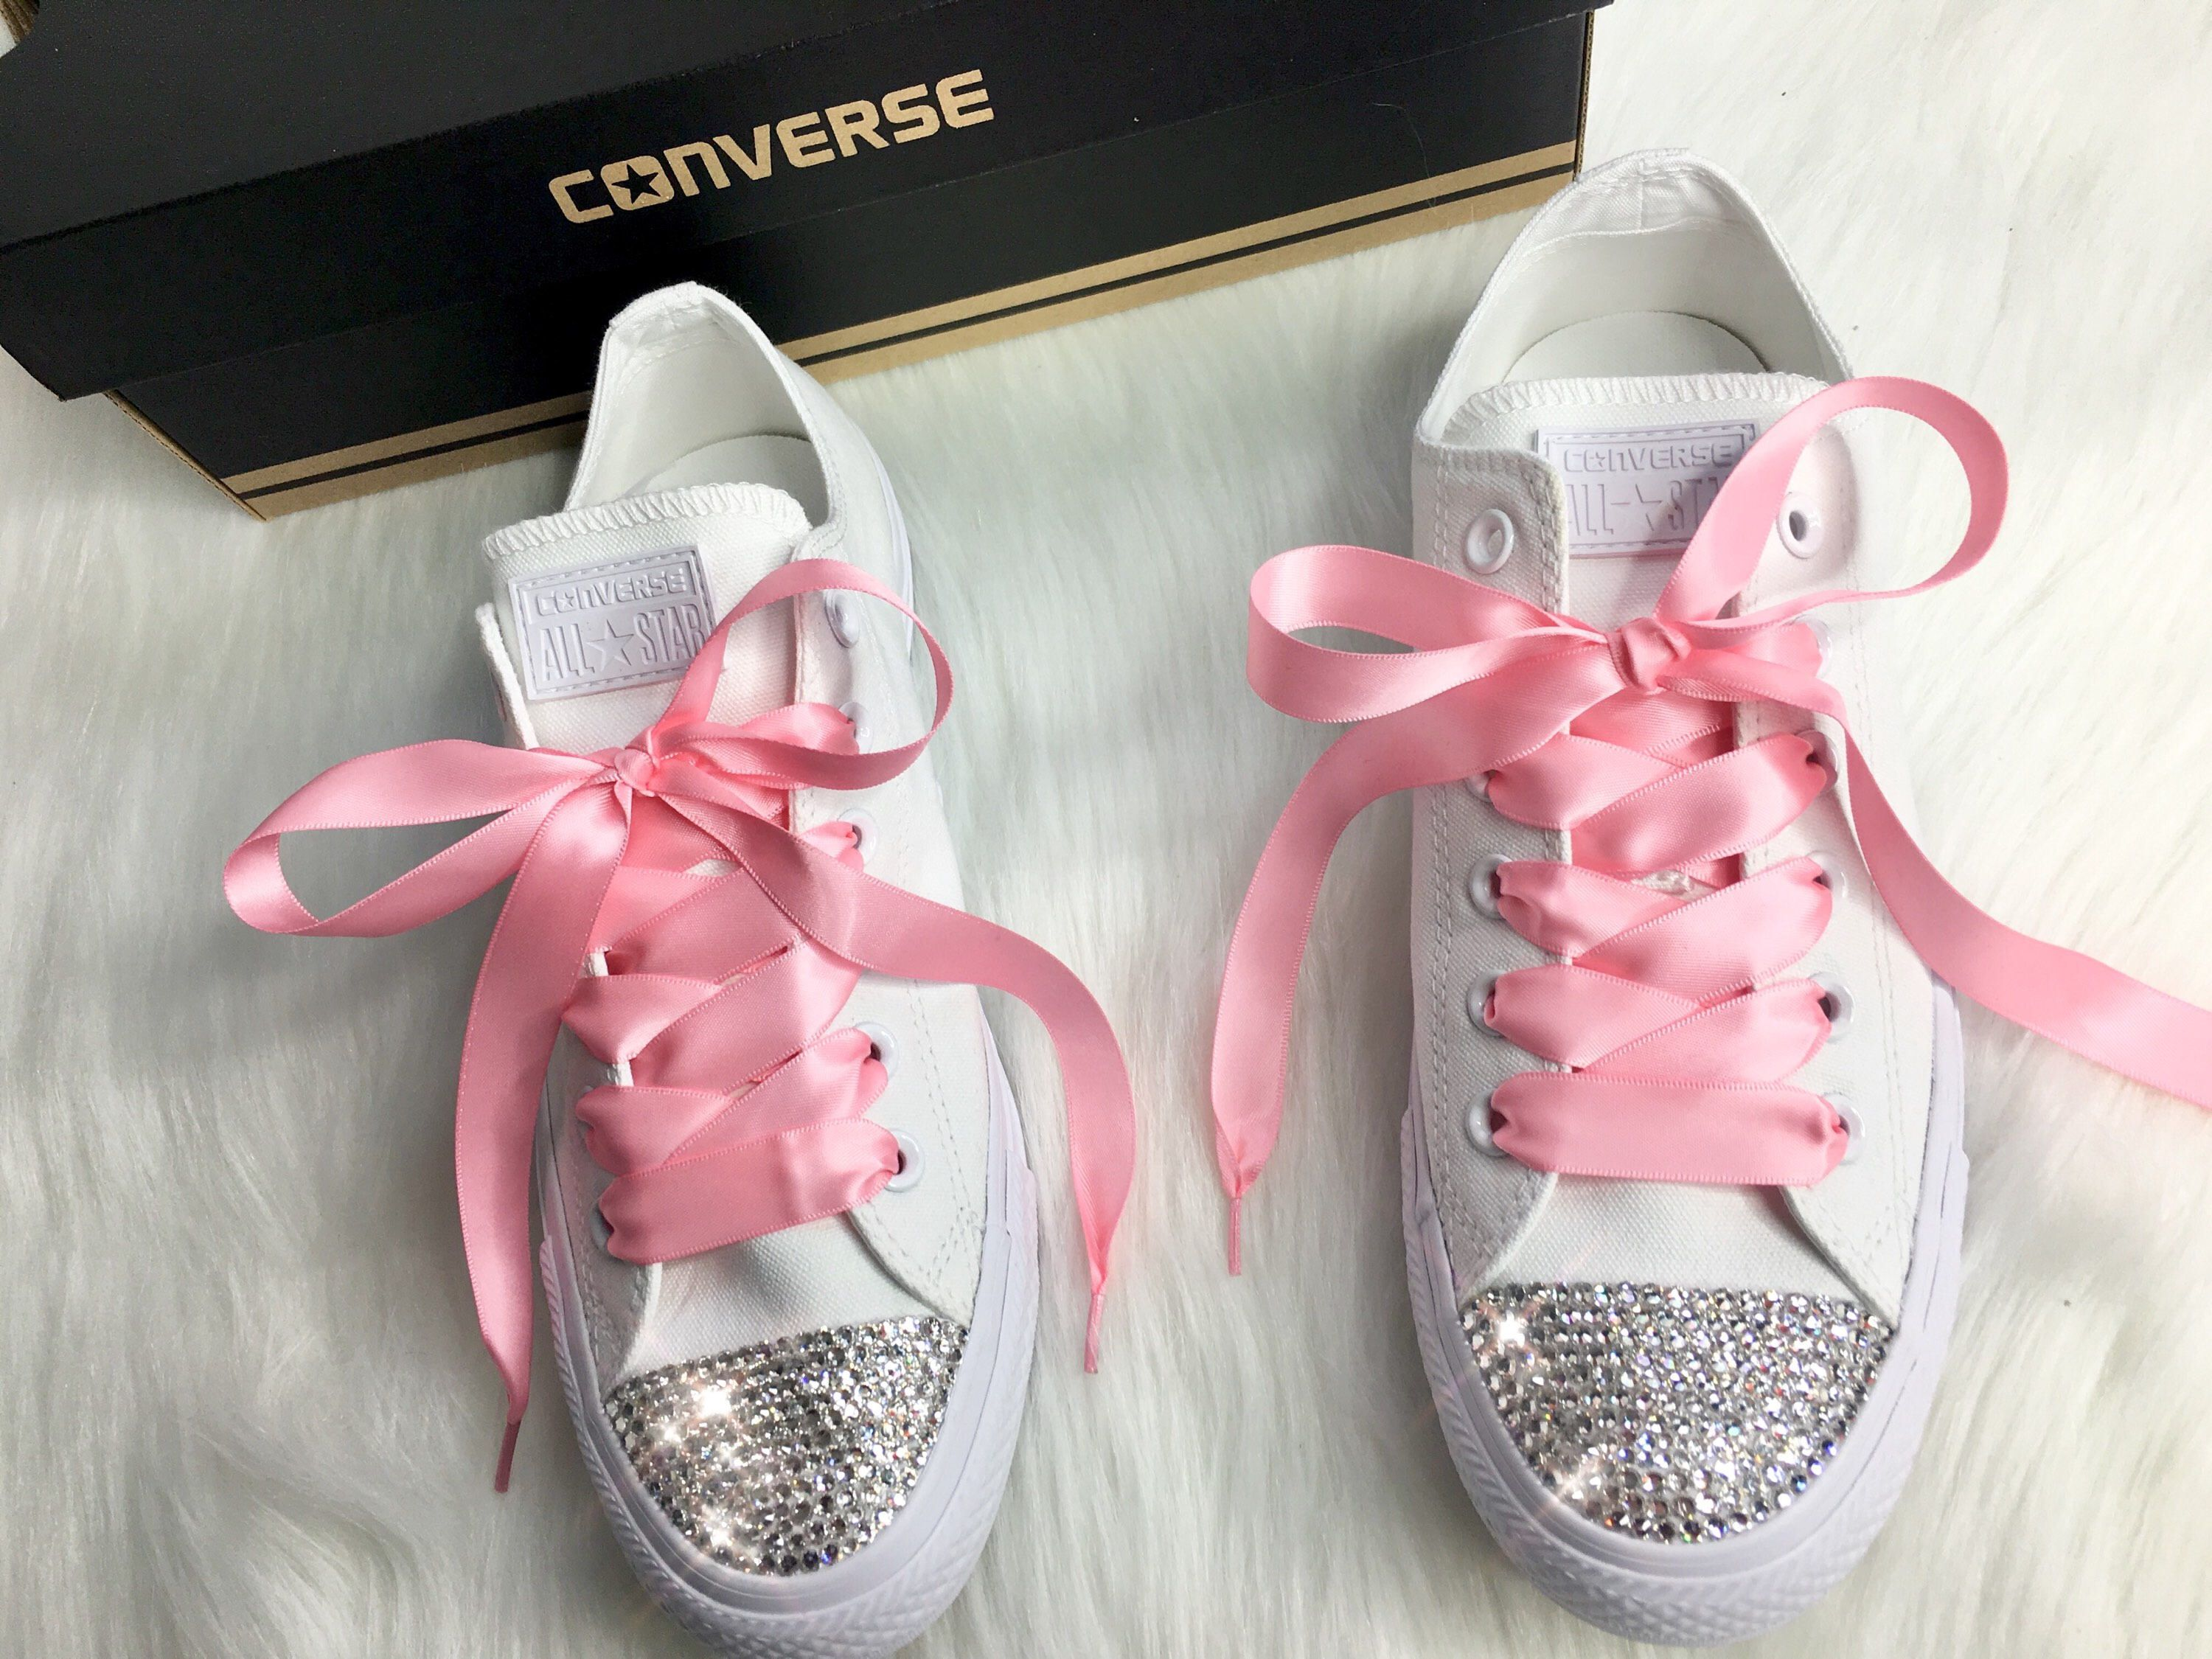 Pin by Desert Princess on 20 | Bling shoes, Swarovski